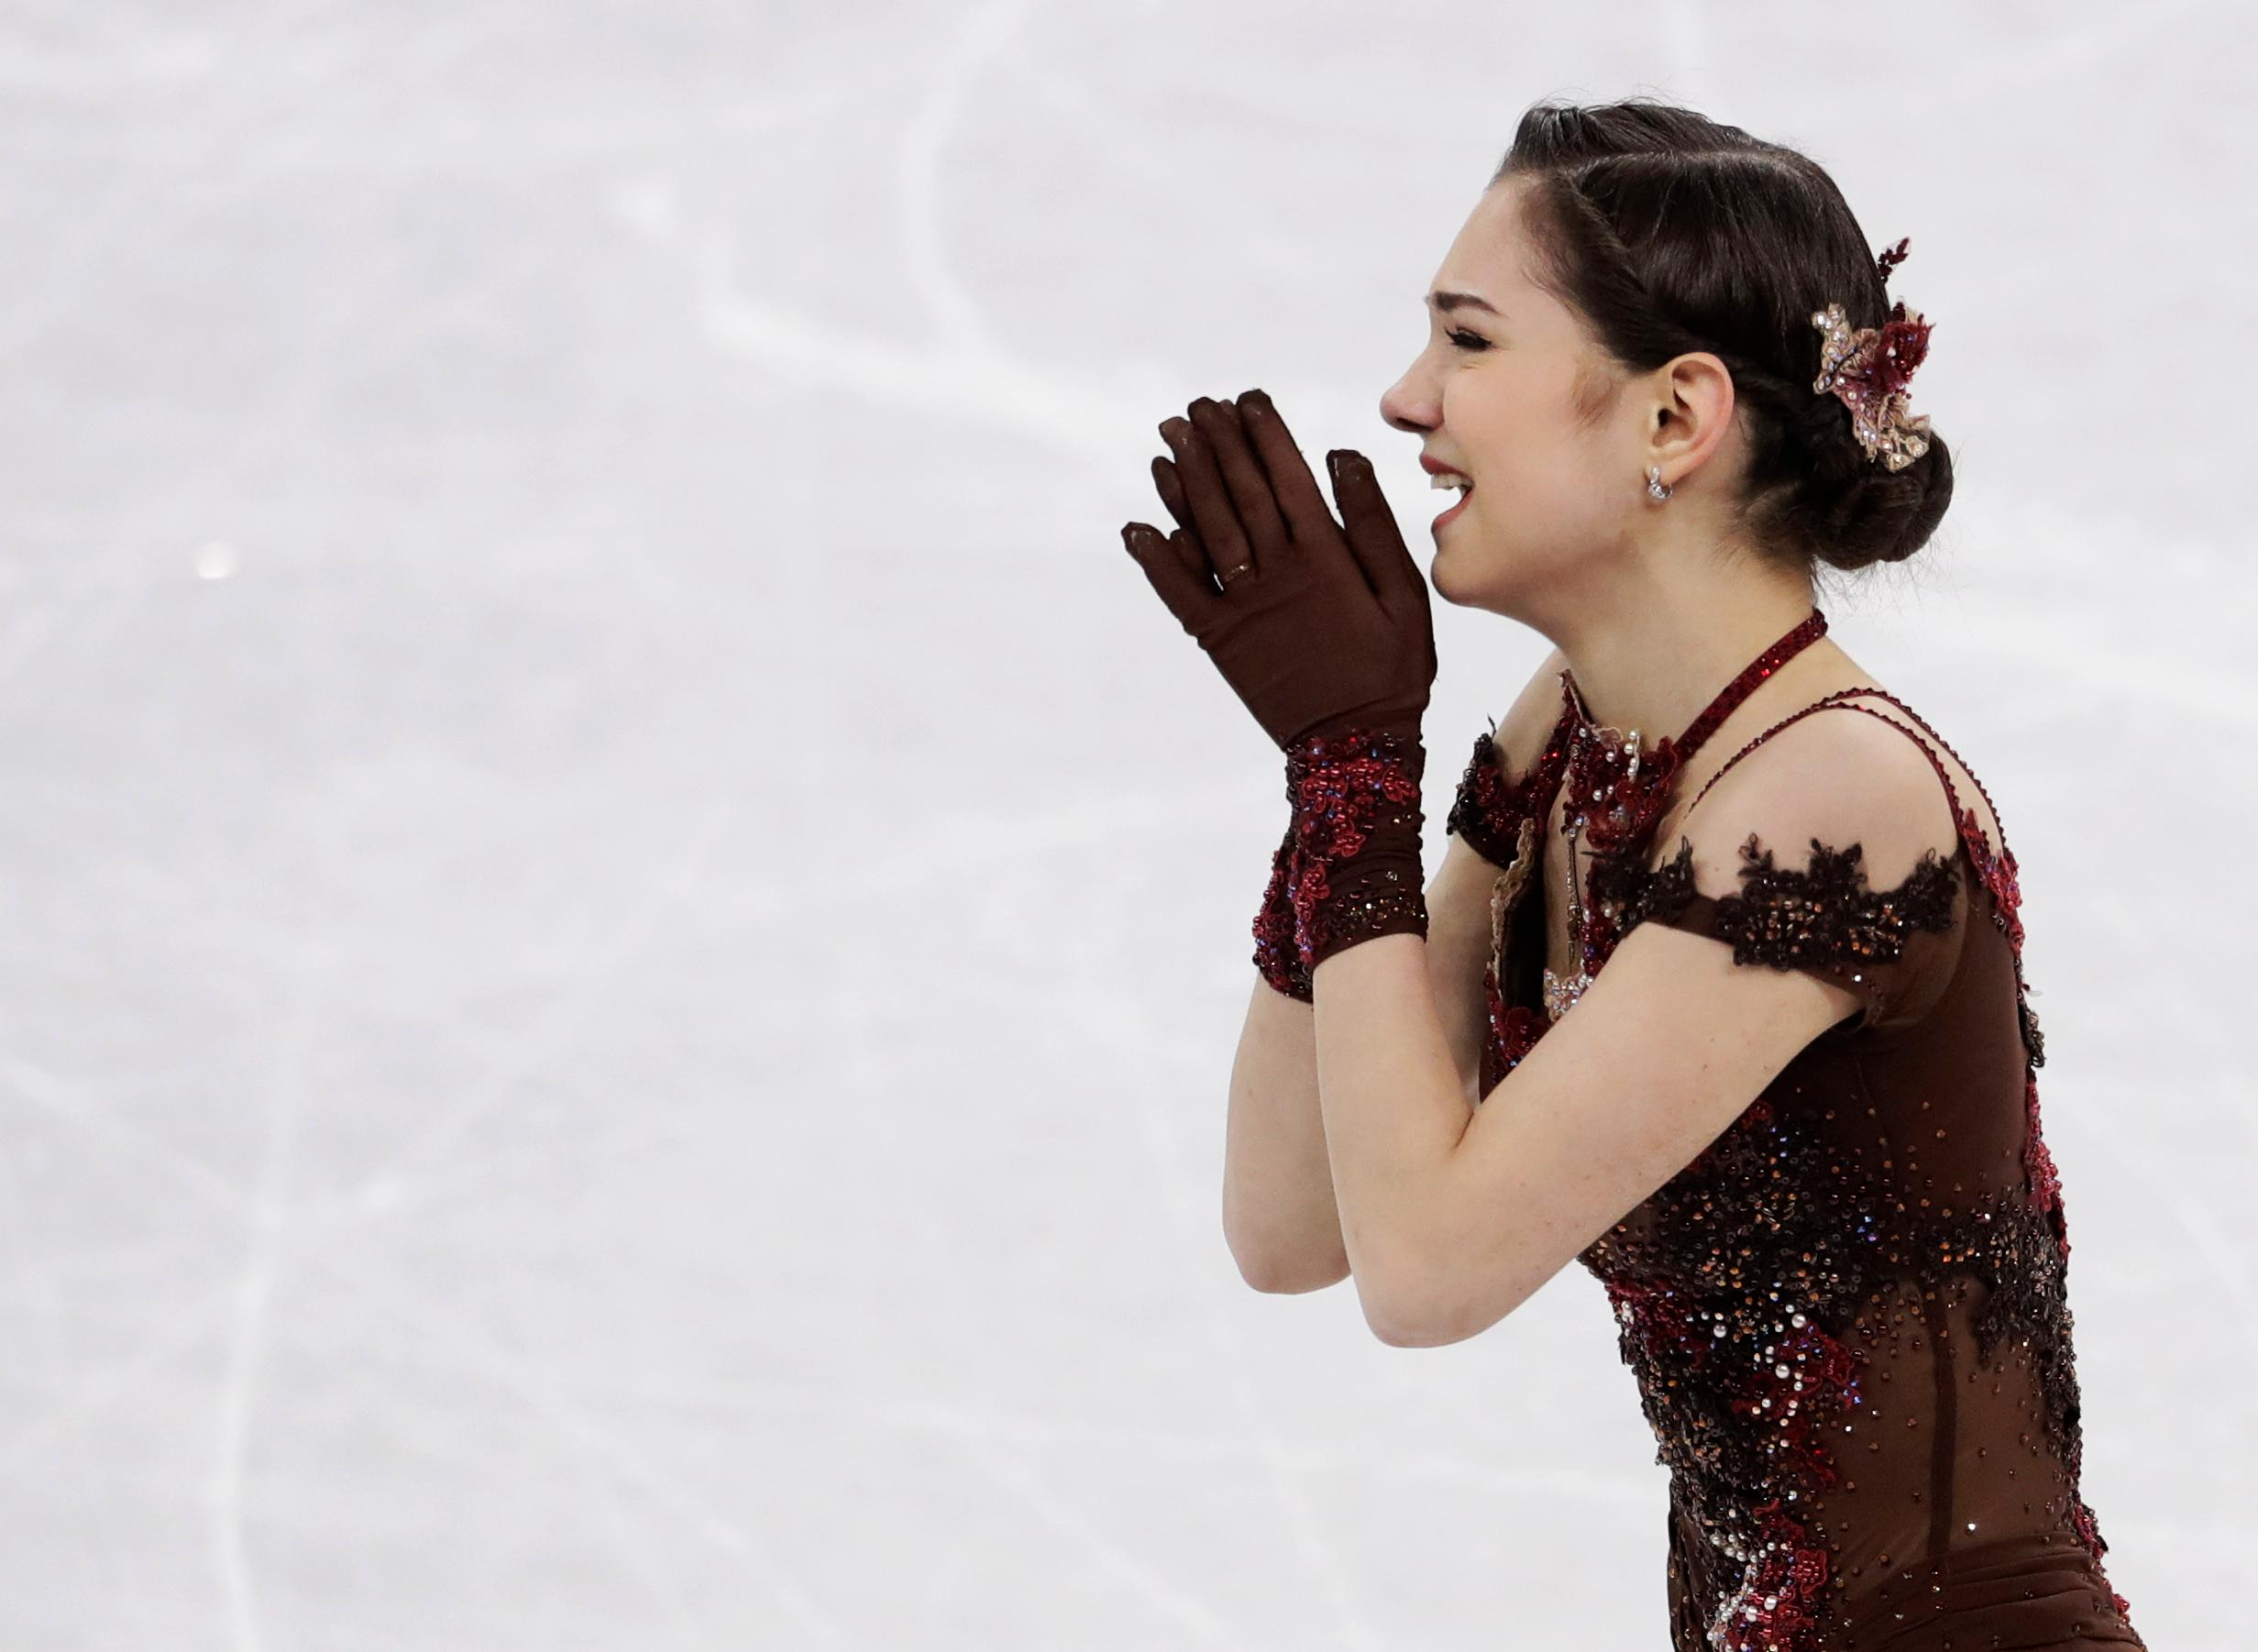 Evgenia Medvedeva of the Olympic Athletes of Russia reacts after her performance during the women's free figure skating final in the Gangneung Ice Arena at the 2018 Winter Olympics in Gangneung, South Korea, Friday, Feb. 23, 2018. (AP Photo/Petr David Josek)